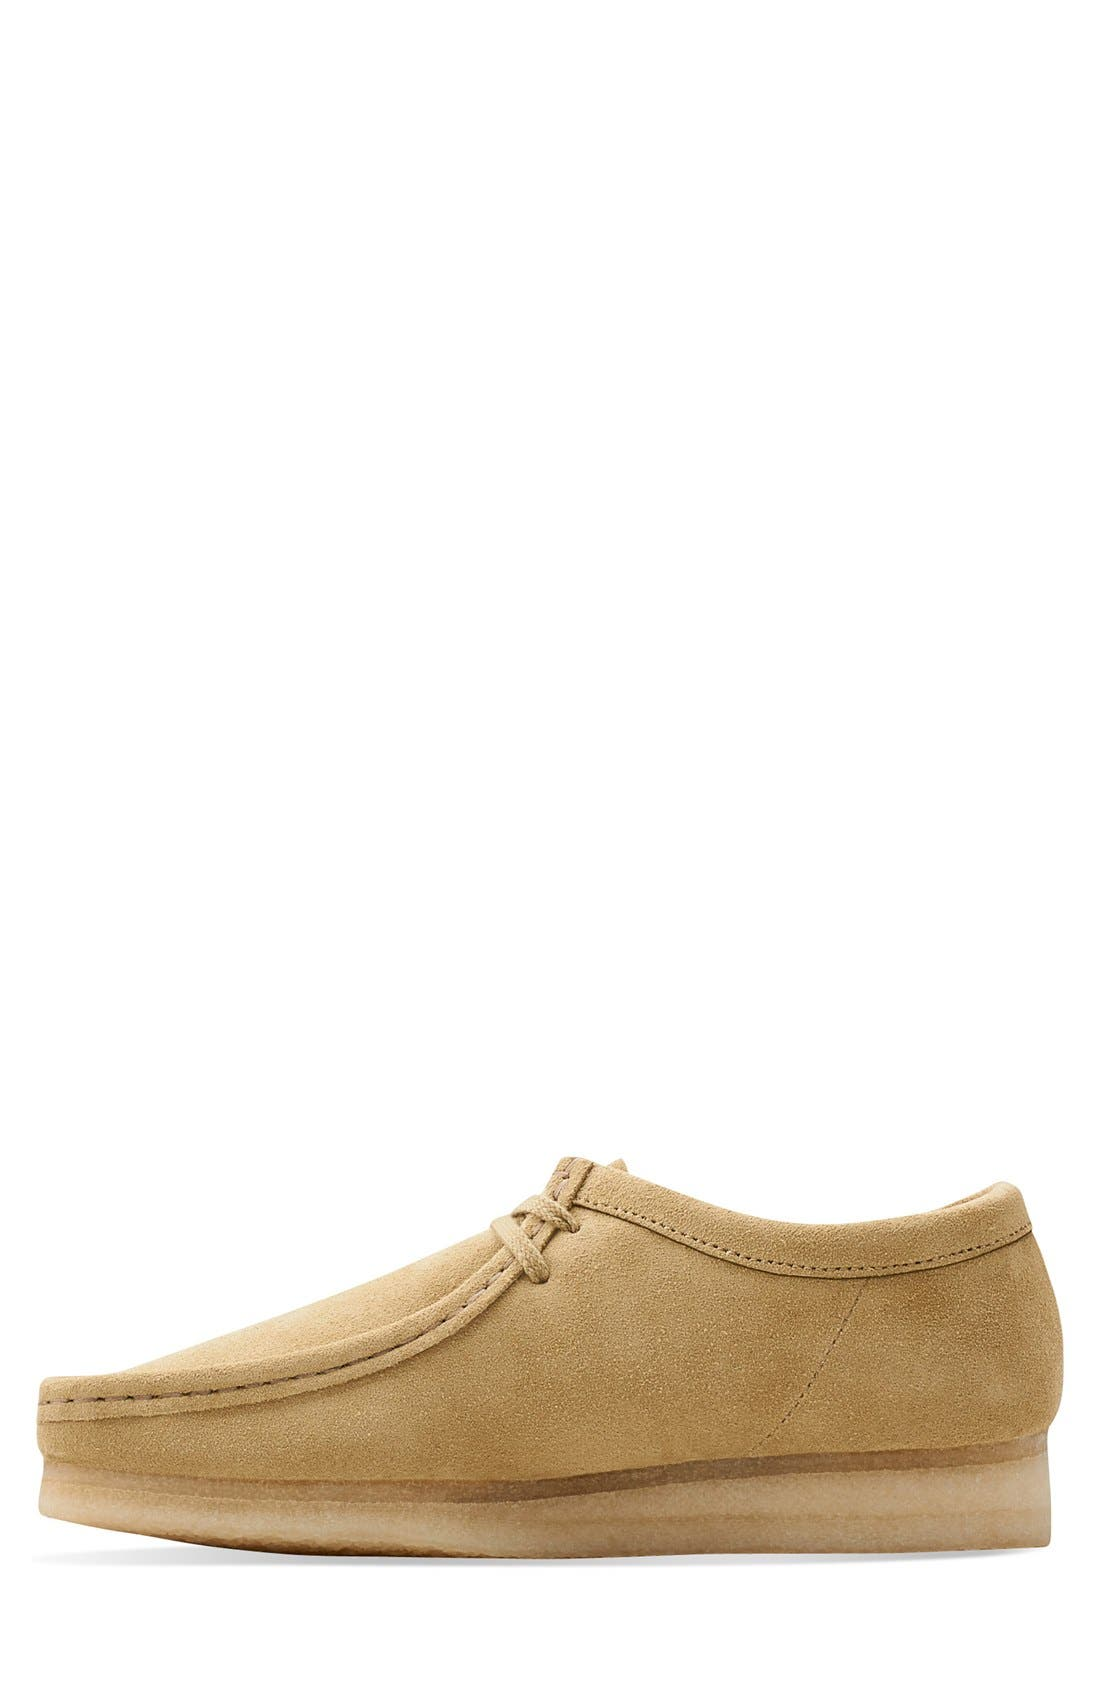 'Wallabee' Moc Toe Derby (Online Only),                             Alternate thumbnail 5, color,                             Maple Suede